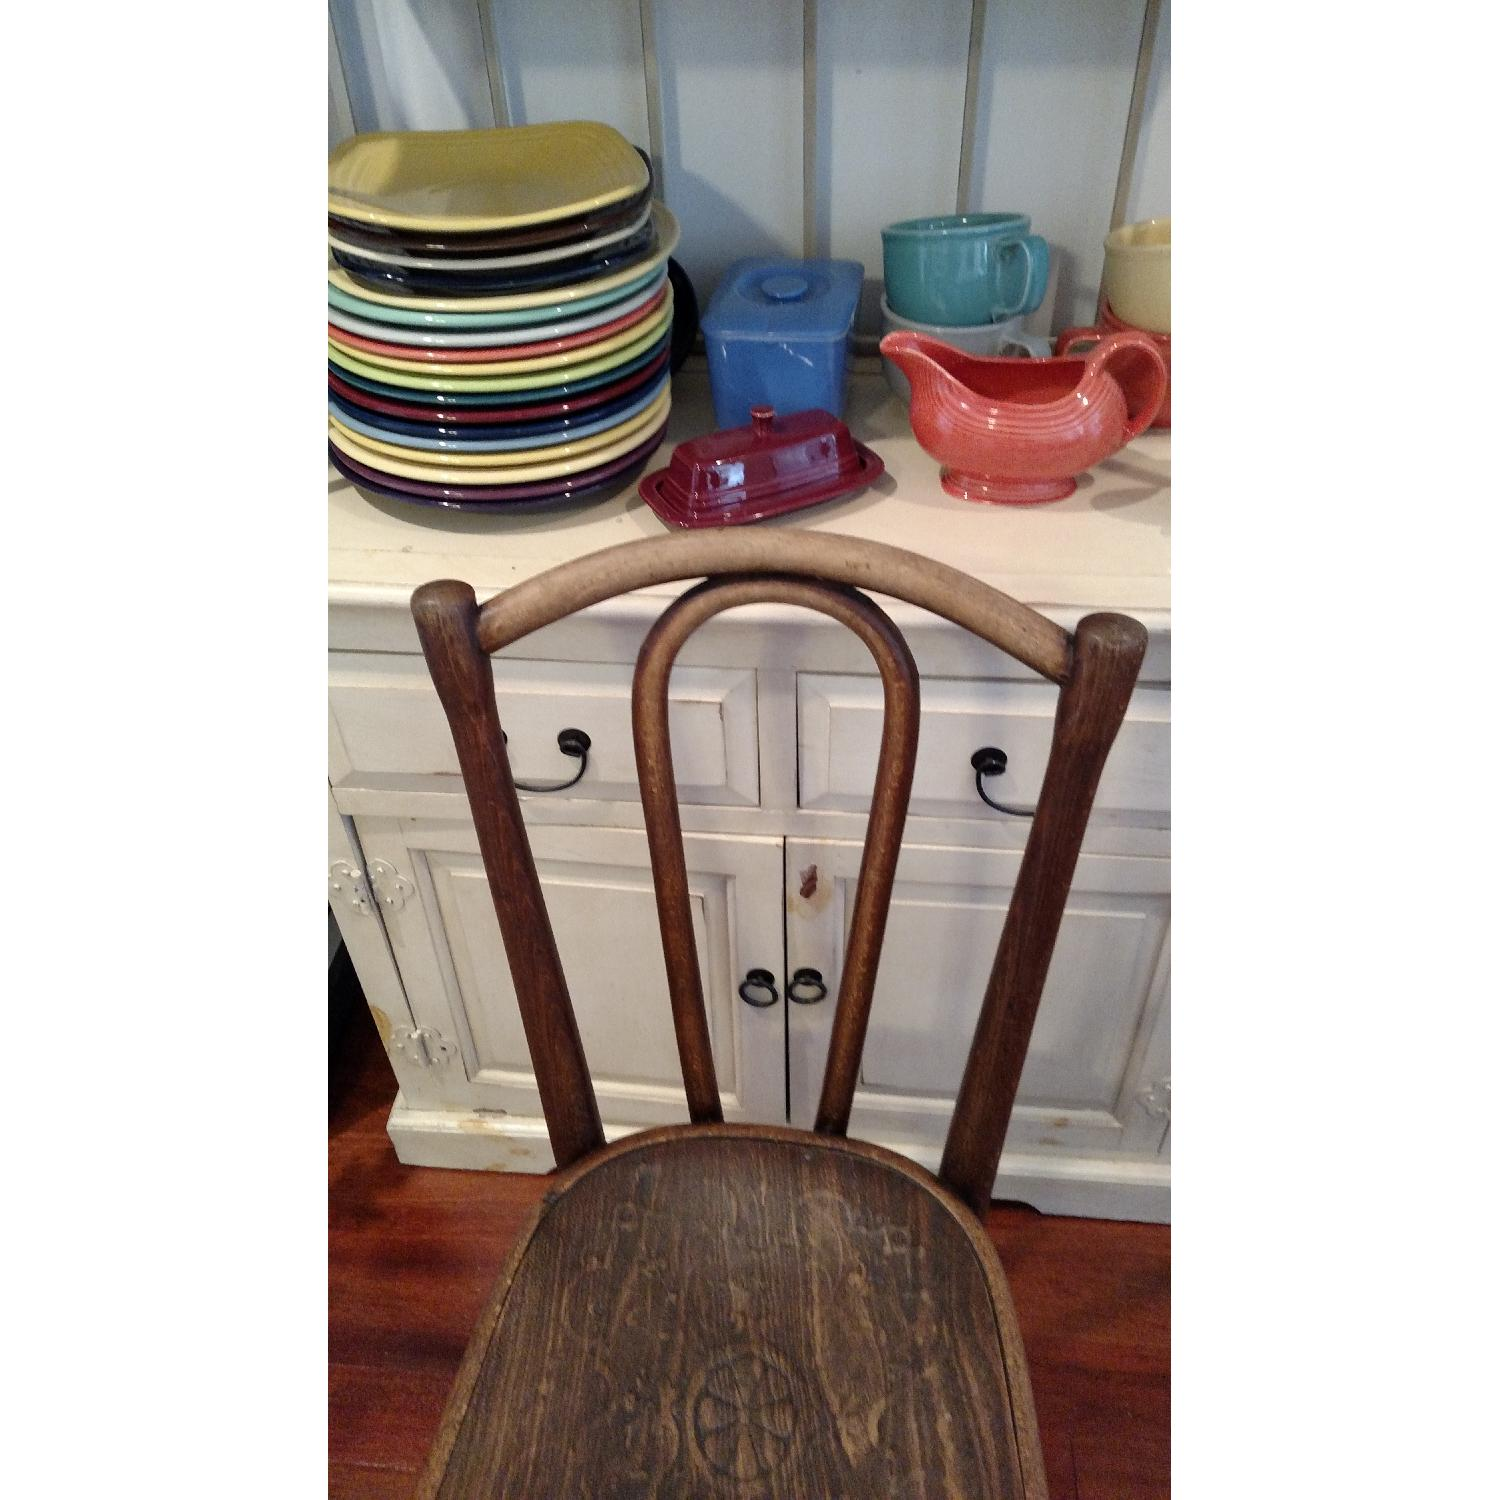 Thonet circa 1920s Bentwood Dining Chair w/ Floral Design Wood Seat - image-3